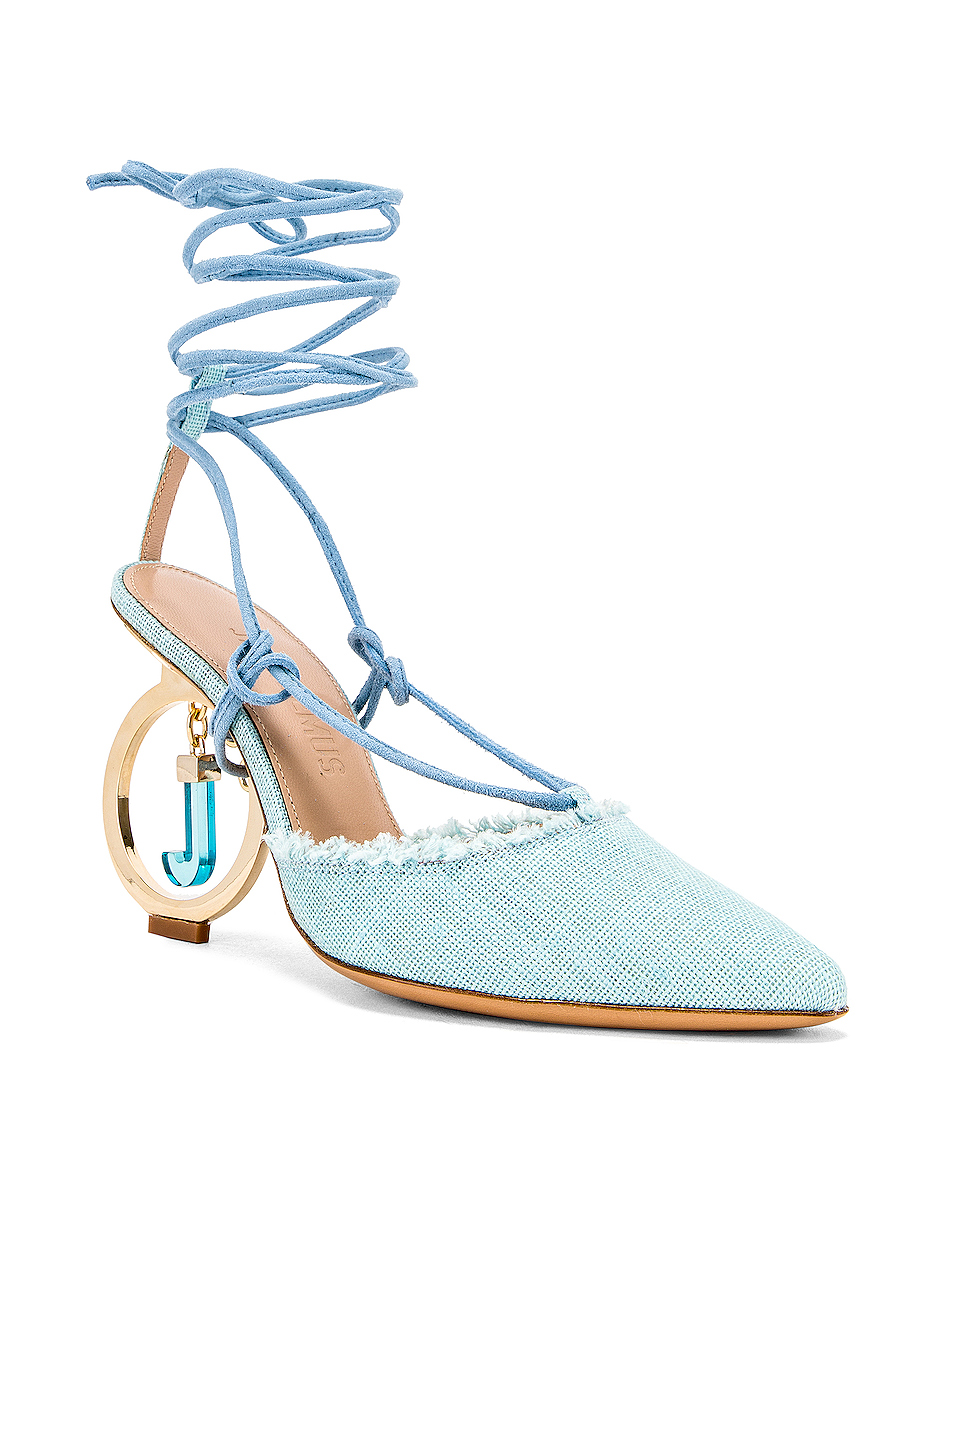 JACQUEMUS Chaussures Riviera Sandal